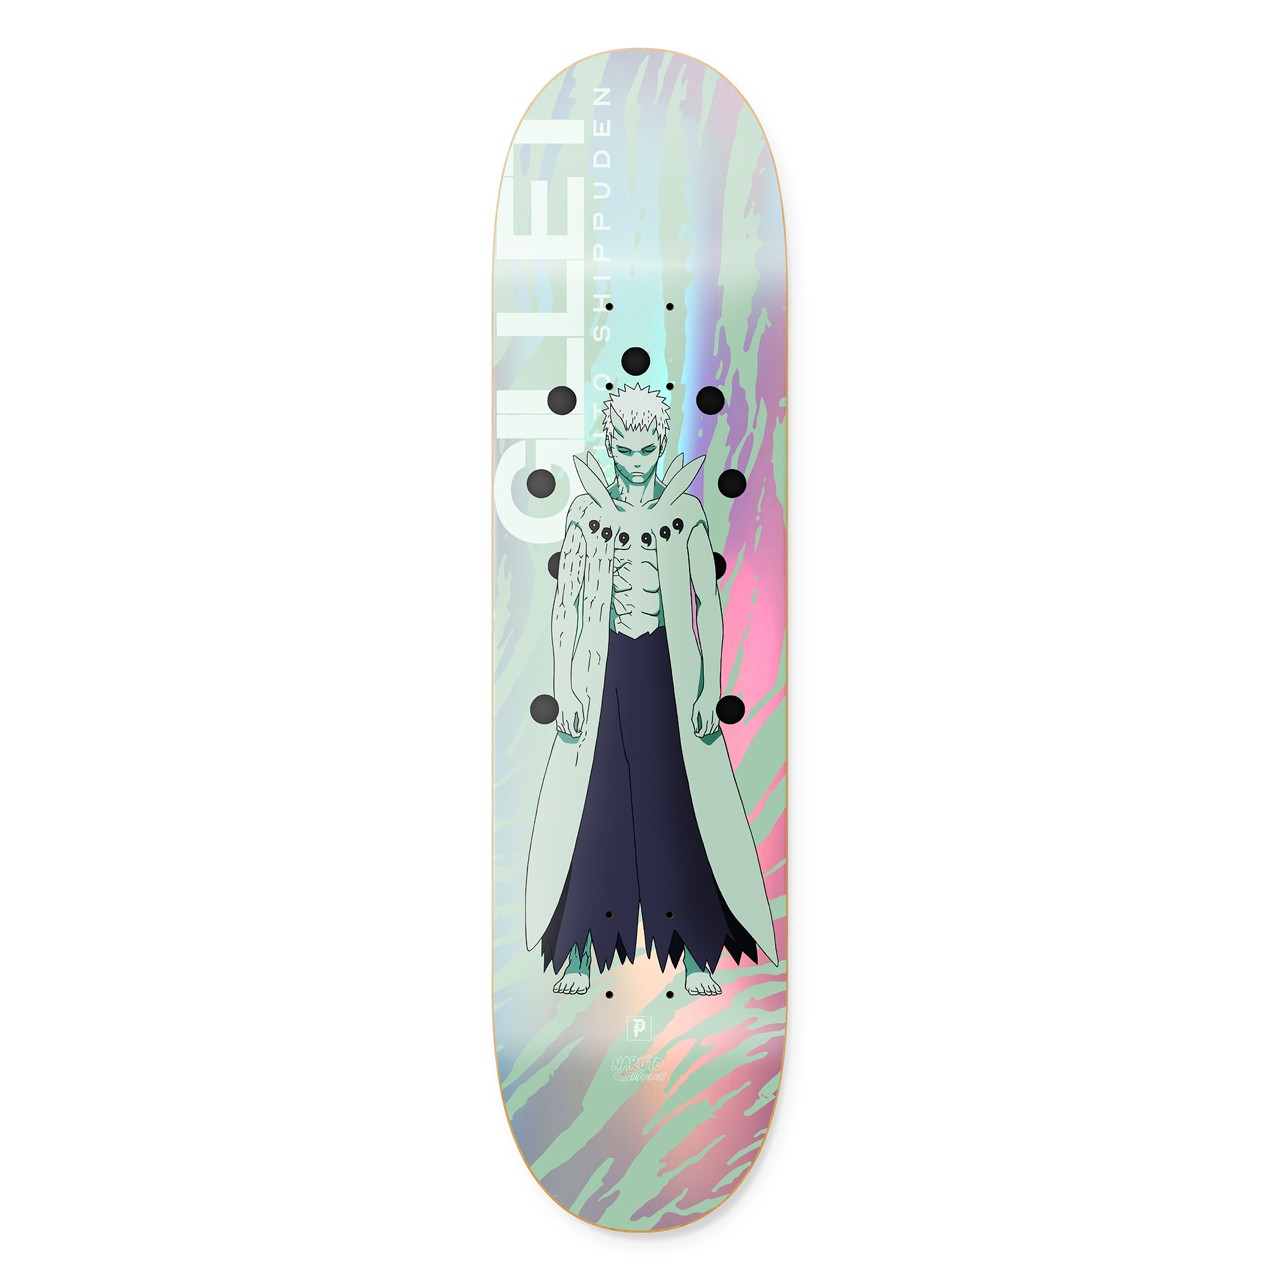 'Naruto Shippuden' x Primitive Skateboarding FW20 collaboration collection fall winter 2020 release date info buy skate deck